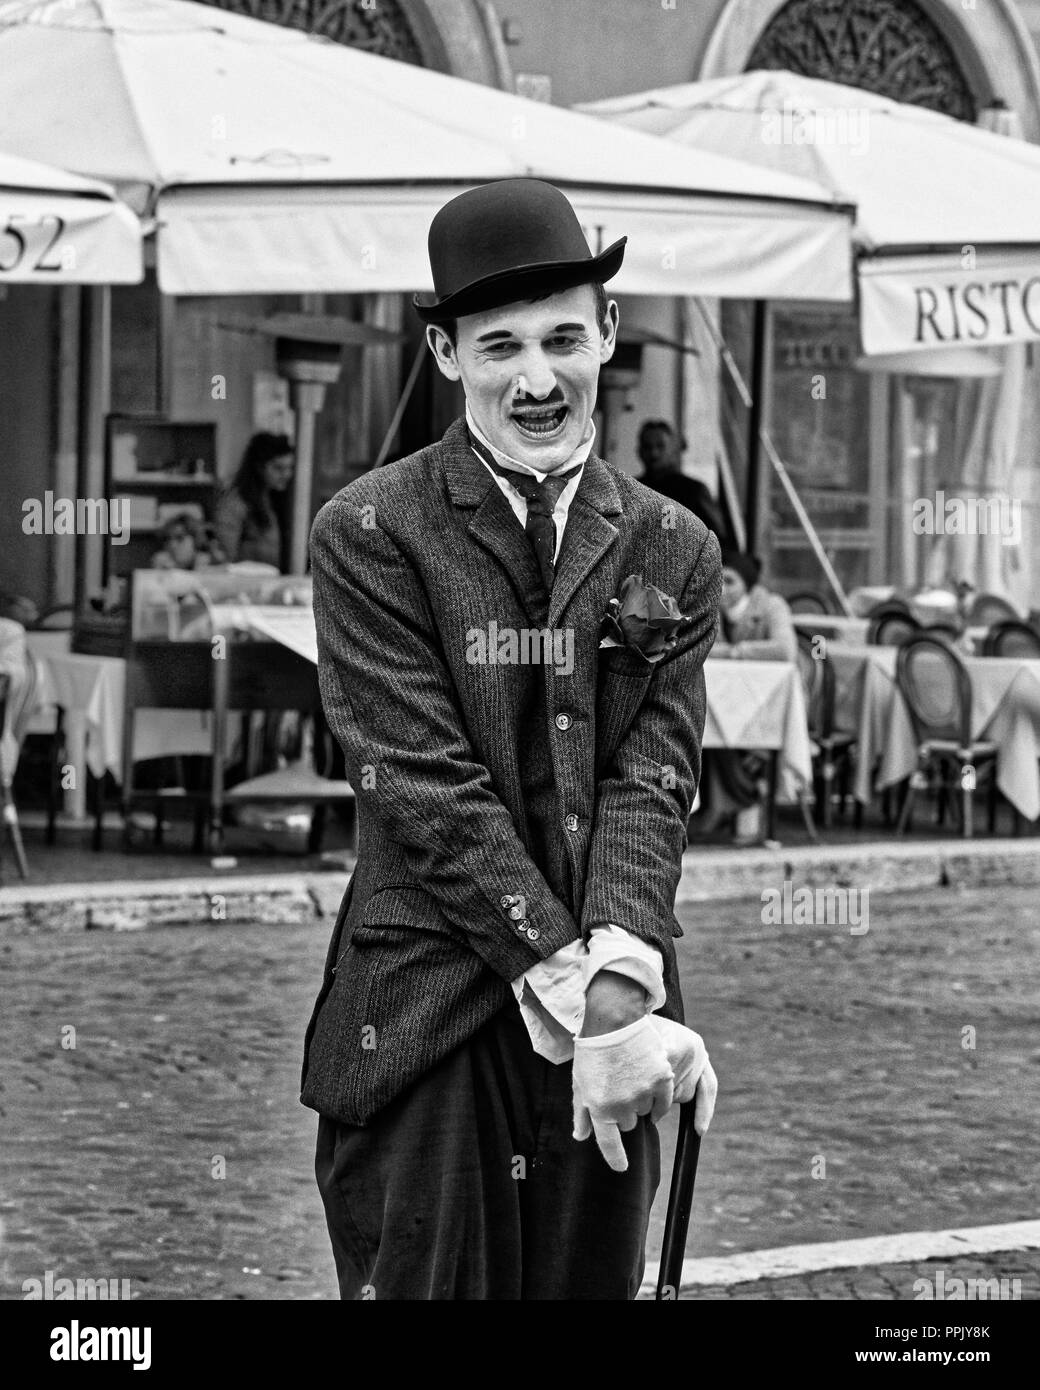 Italy, Rome, March 8/ 2018, Mime dressed as Charlie Chaplin in Piazza Navona (Navona Square) - Stock Image